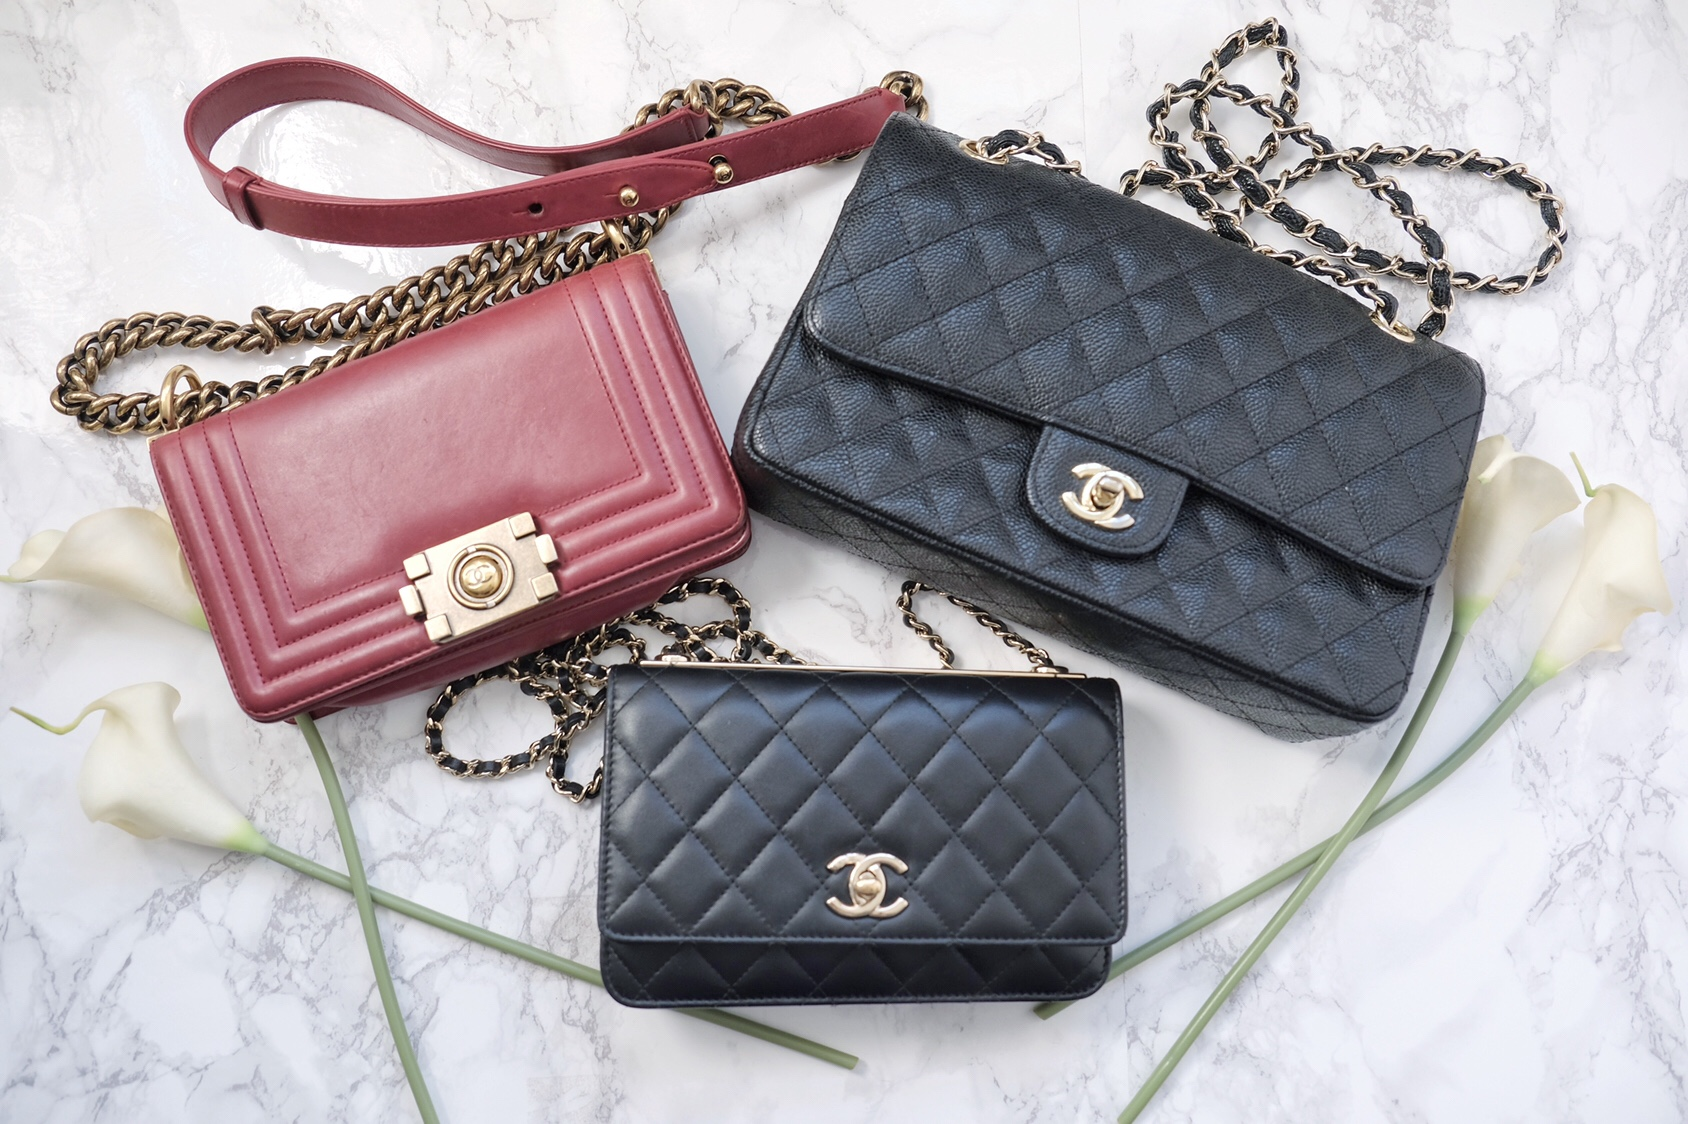 38f2674c6bb Chanel  WOC   Small Bags    Size   Price Comparison - SINCERELY OPHELIA